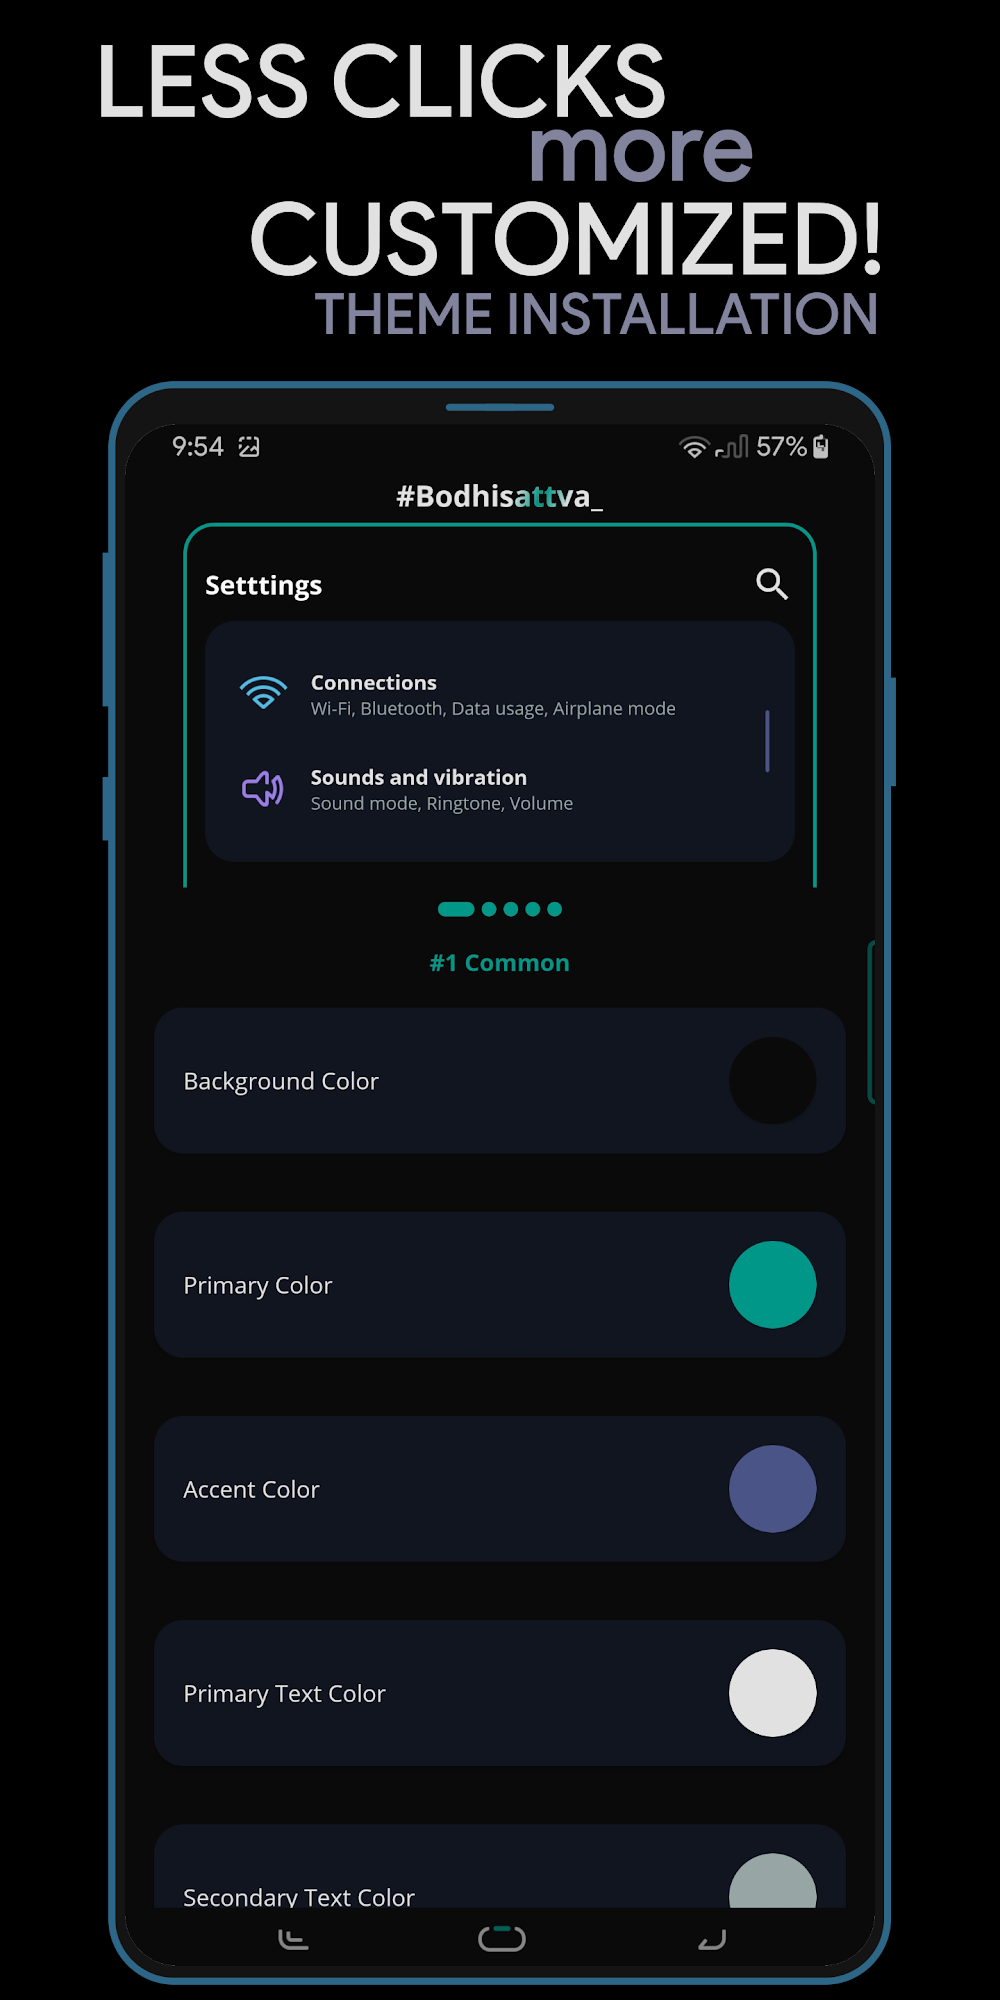 Hex Installer enables Substratum-like theming for Samsung